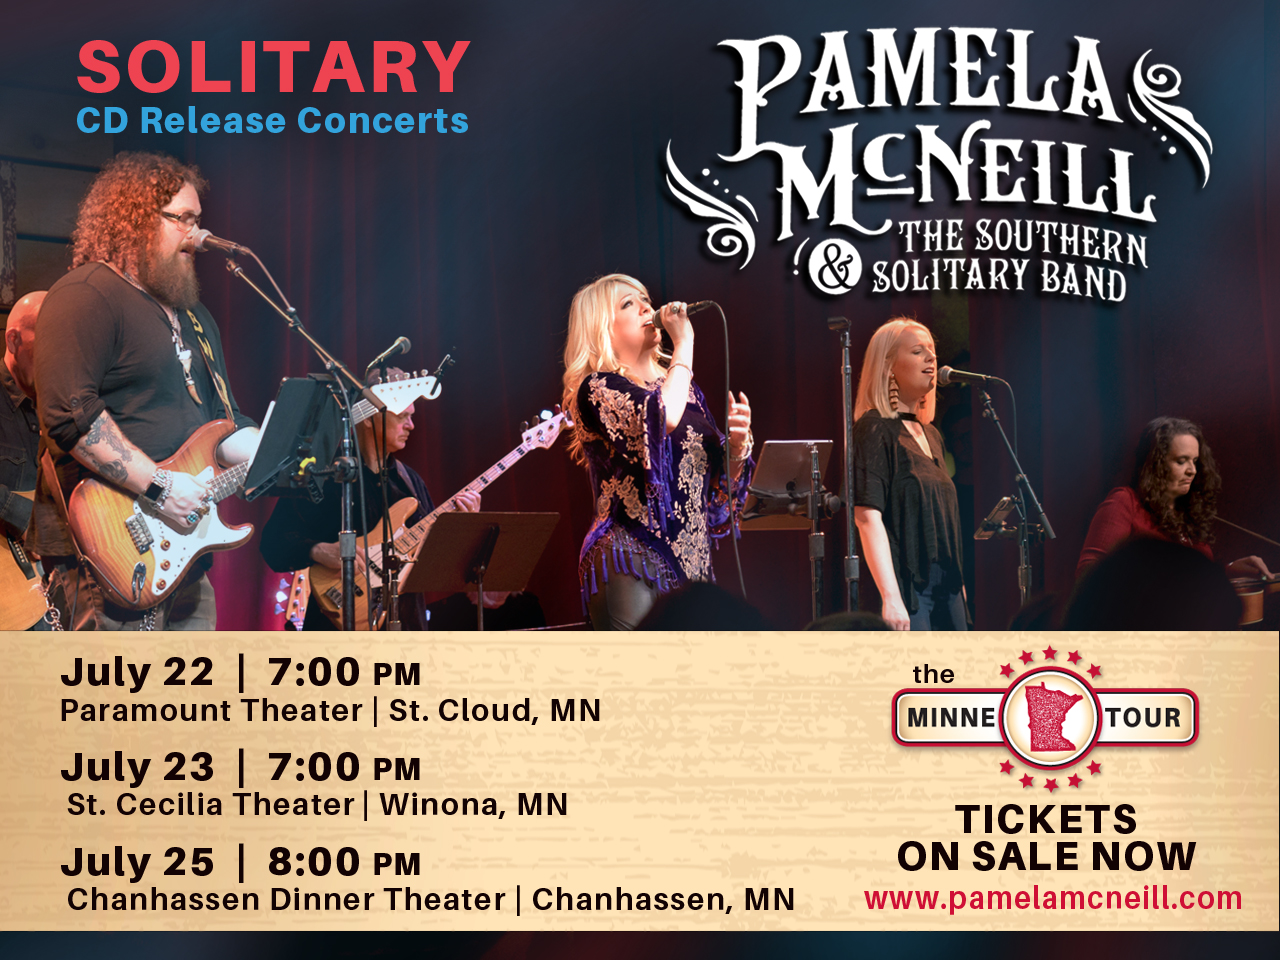 Pamela_CDrelease dates_MINNETOUR_Final.jpg